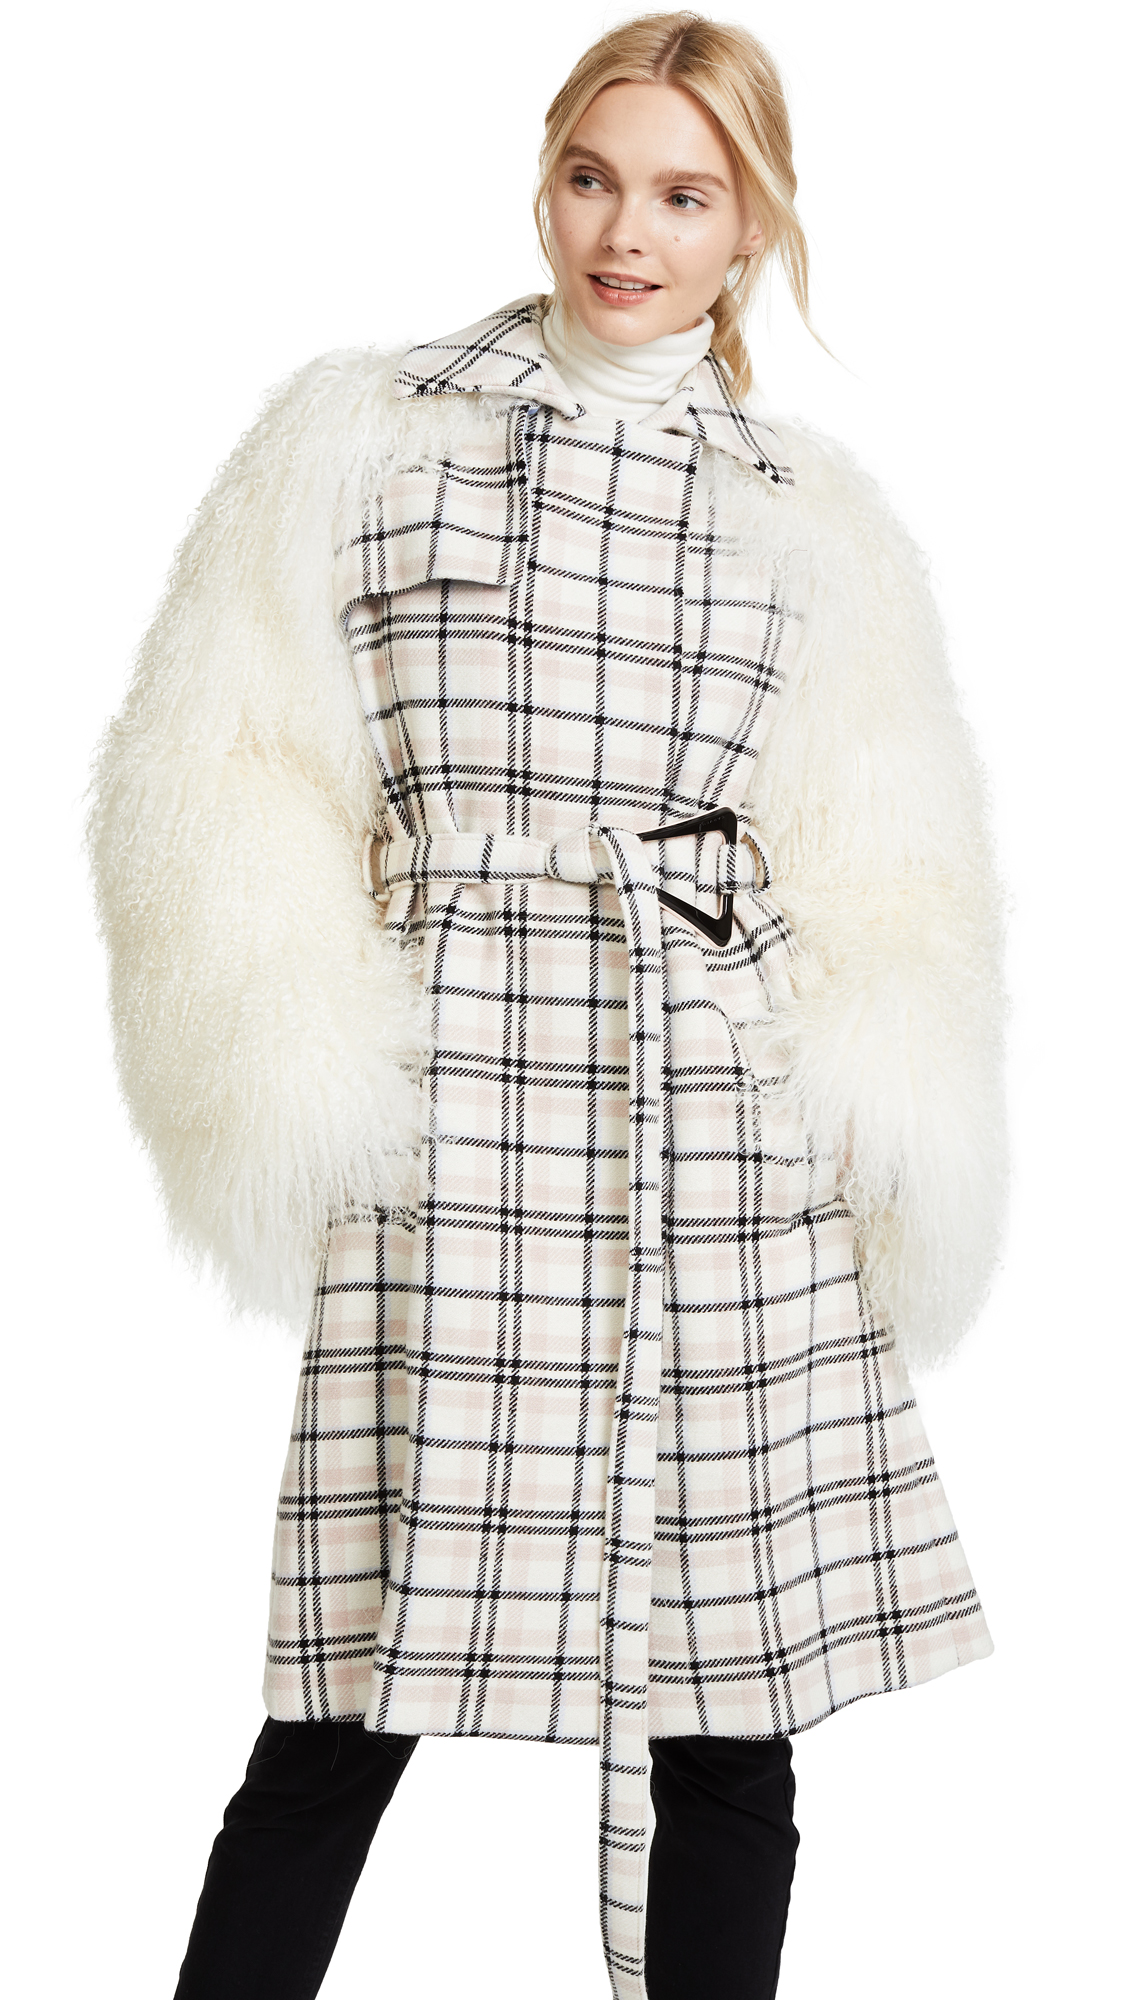 Carven Coat with Shearling Sleeves - Multi